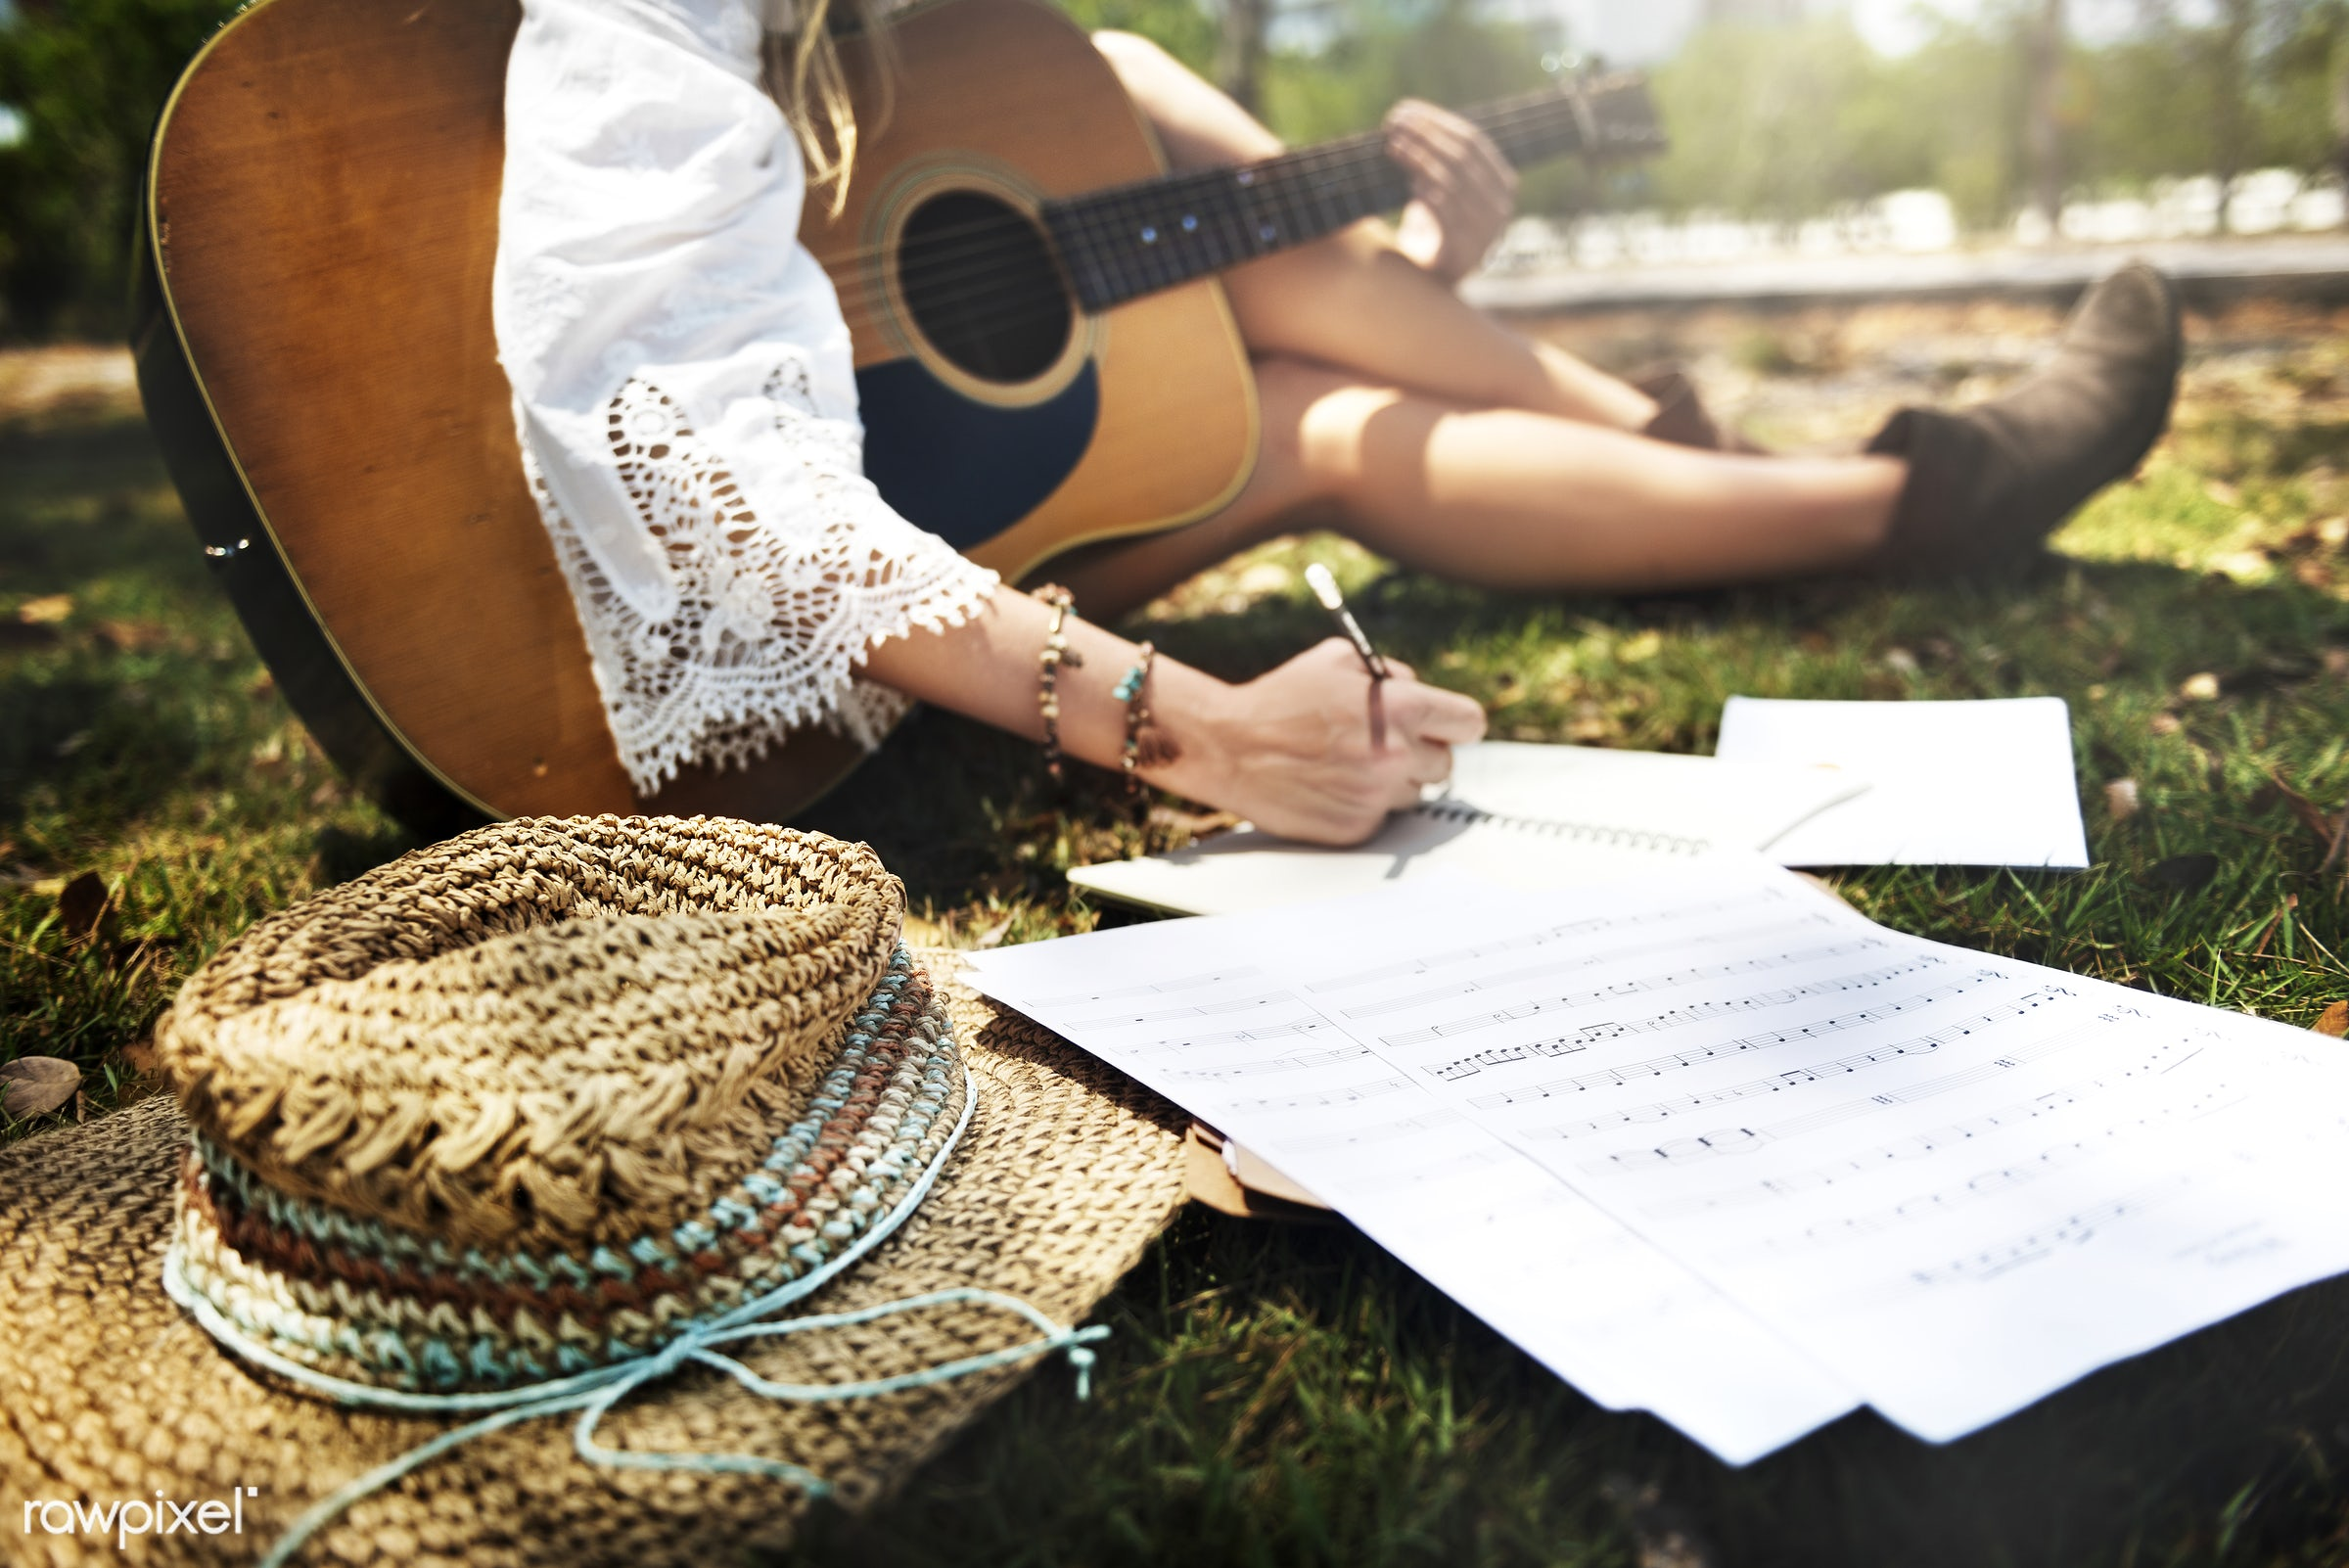 song, writing, lyrics, recreation, hat, composer, nature, hippy, melody, musician, closeup, note, music, songwriter, park,...